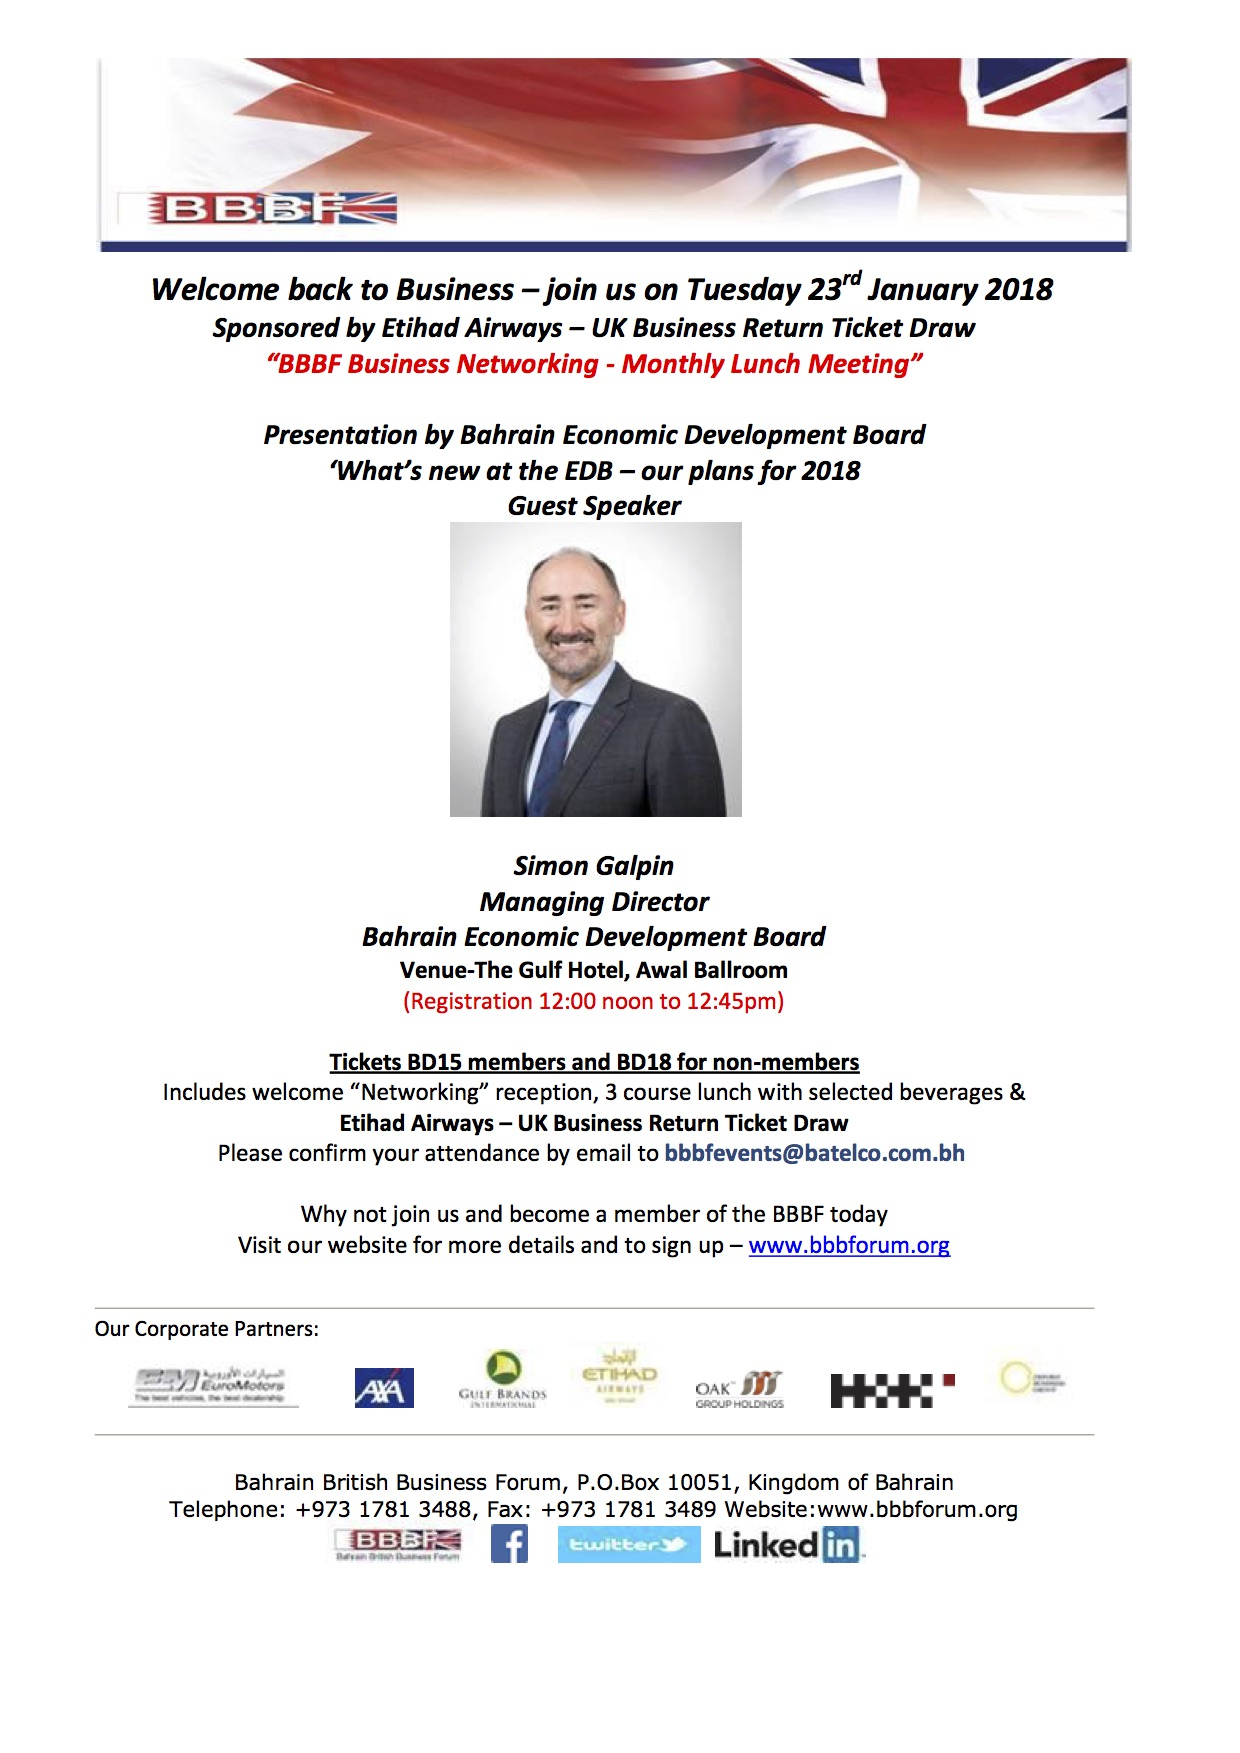 23 January Guest Speaker EDB at the BBBF Business Lunch meeting